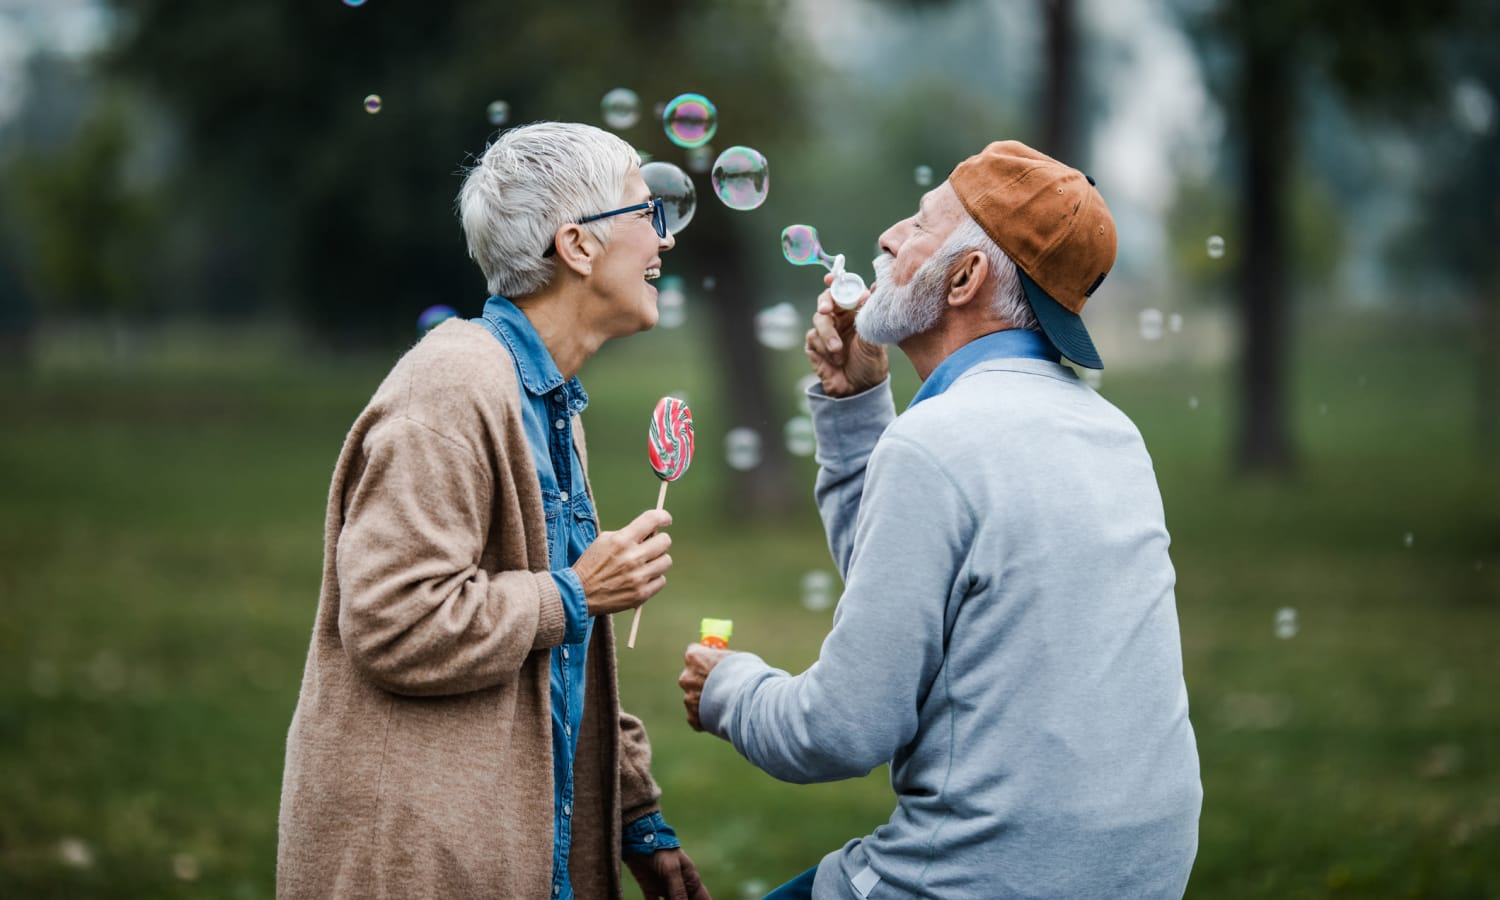 Residents blowing bubbles at Farmington Square Gresham in Gresham, Oregon